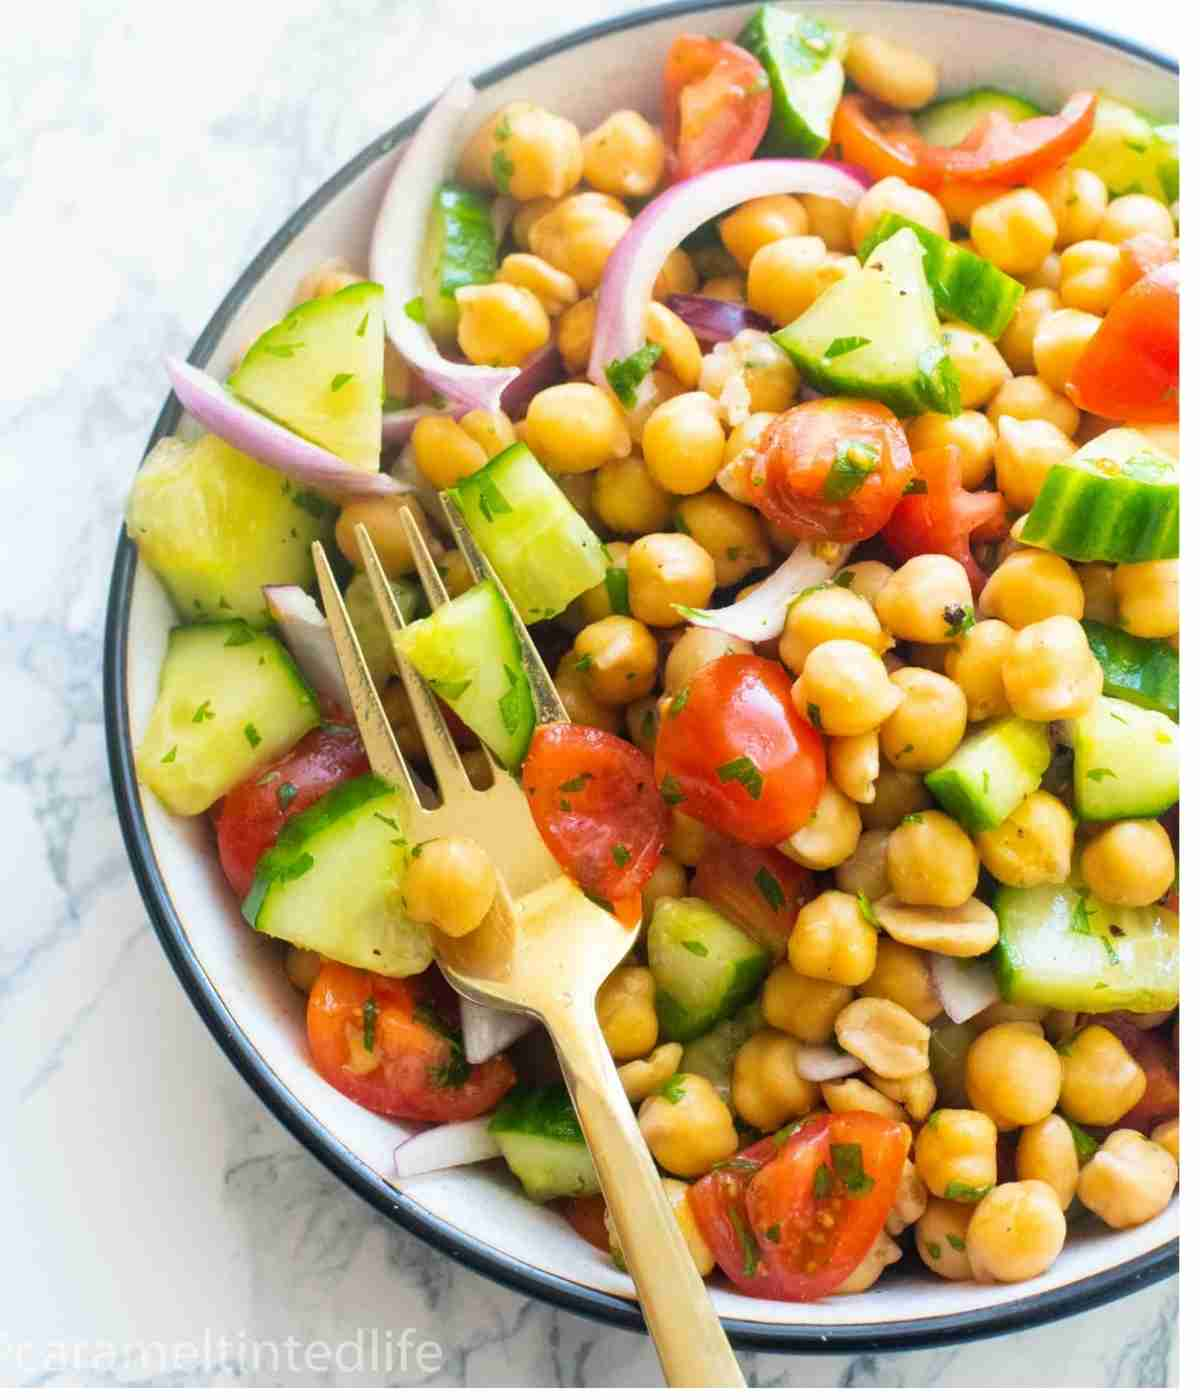 chickpea salad in a bowl with a fork